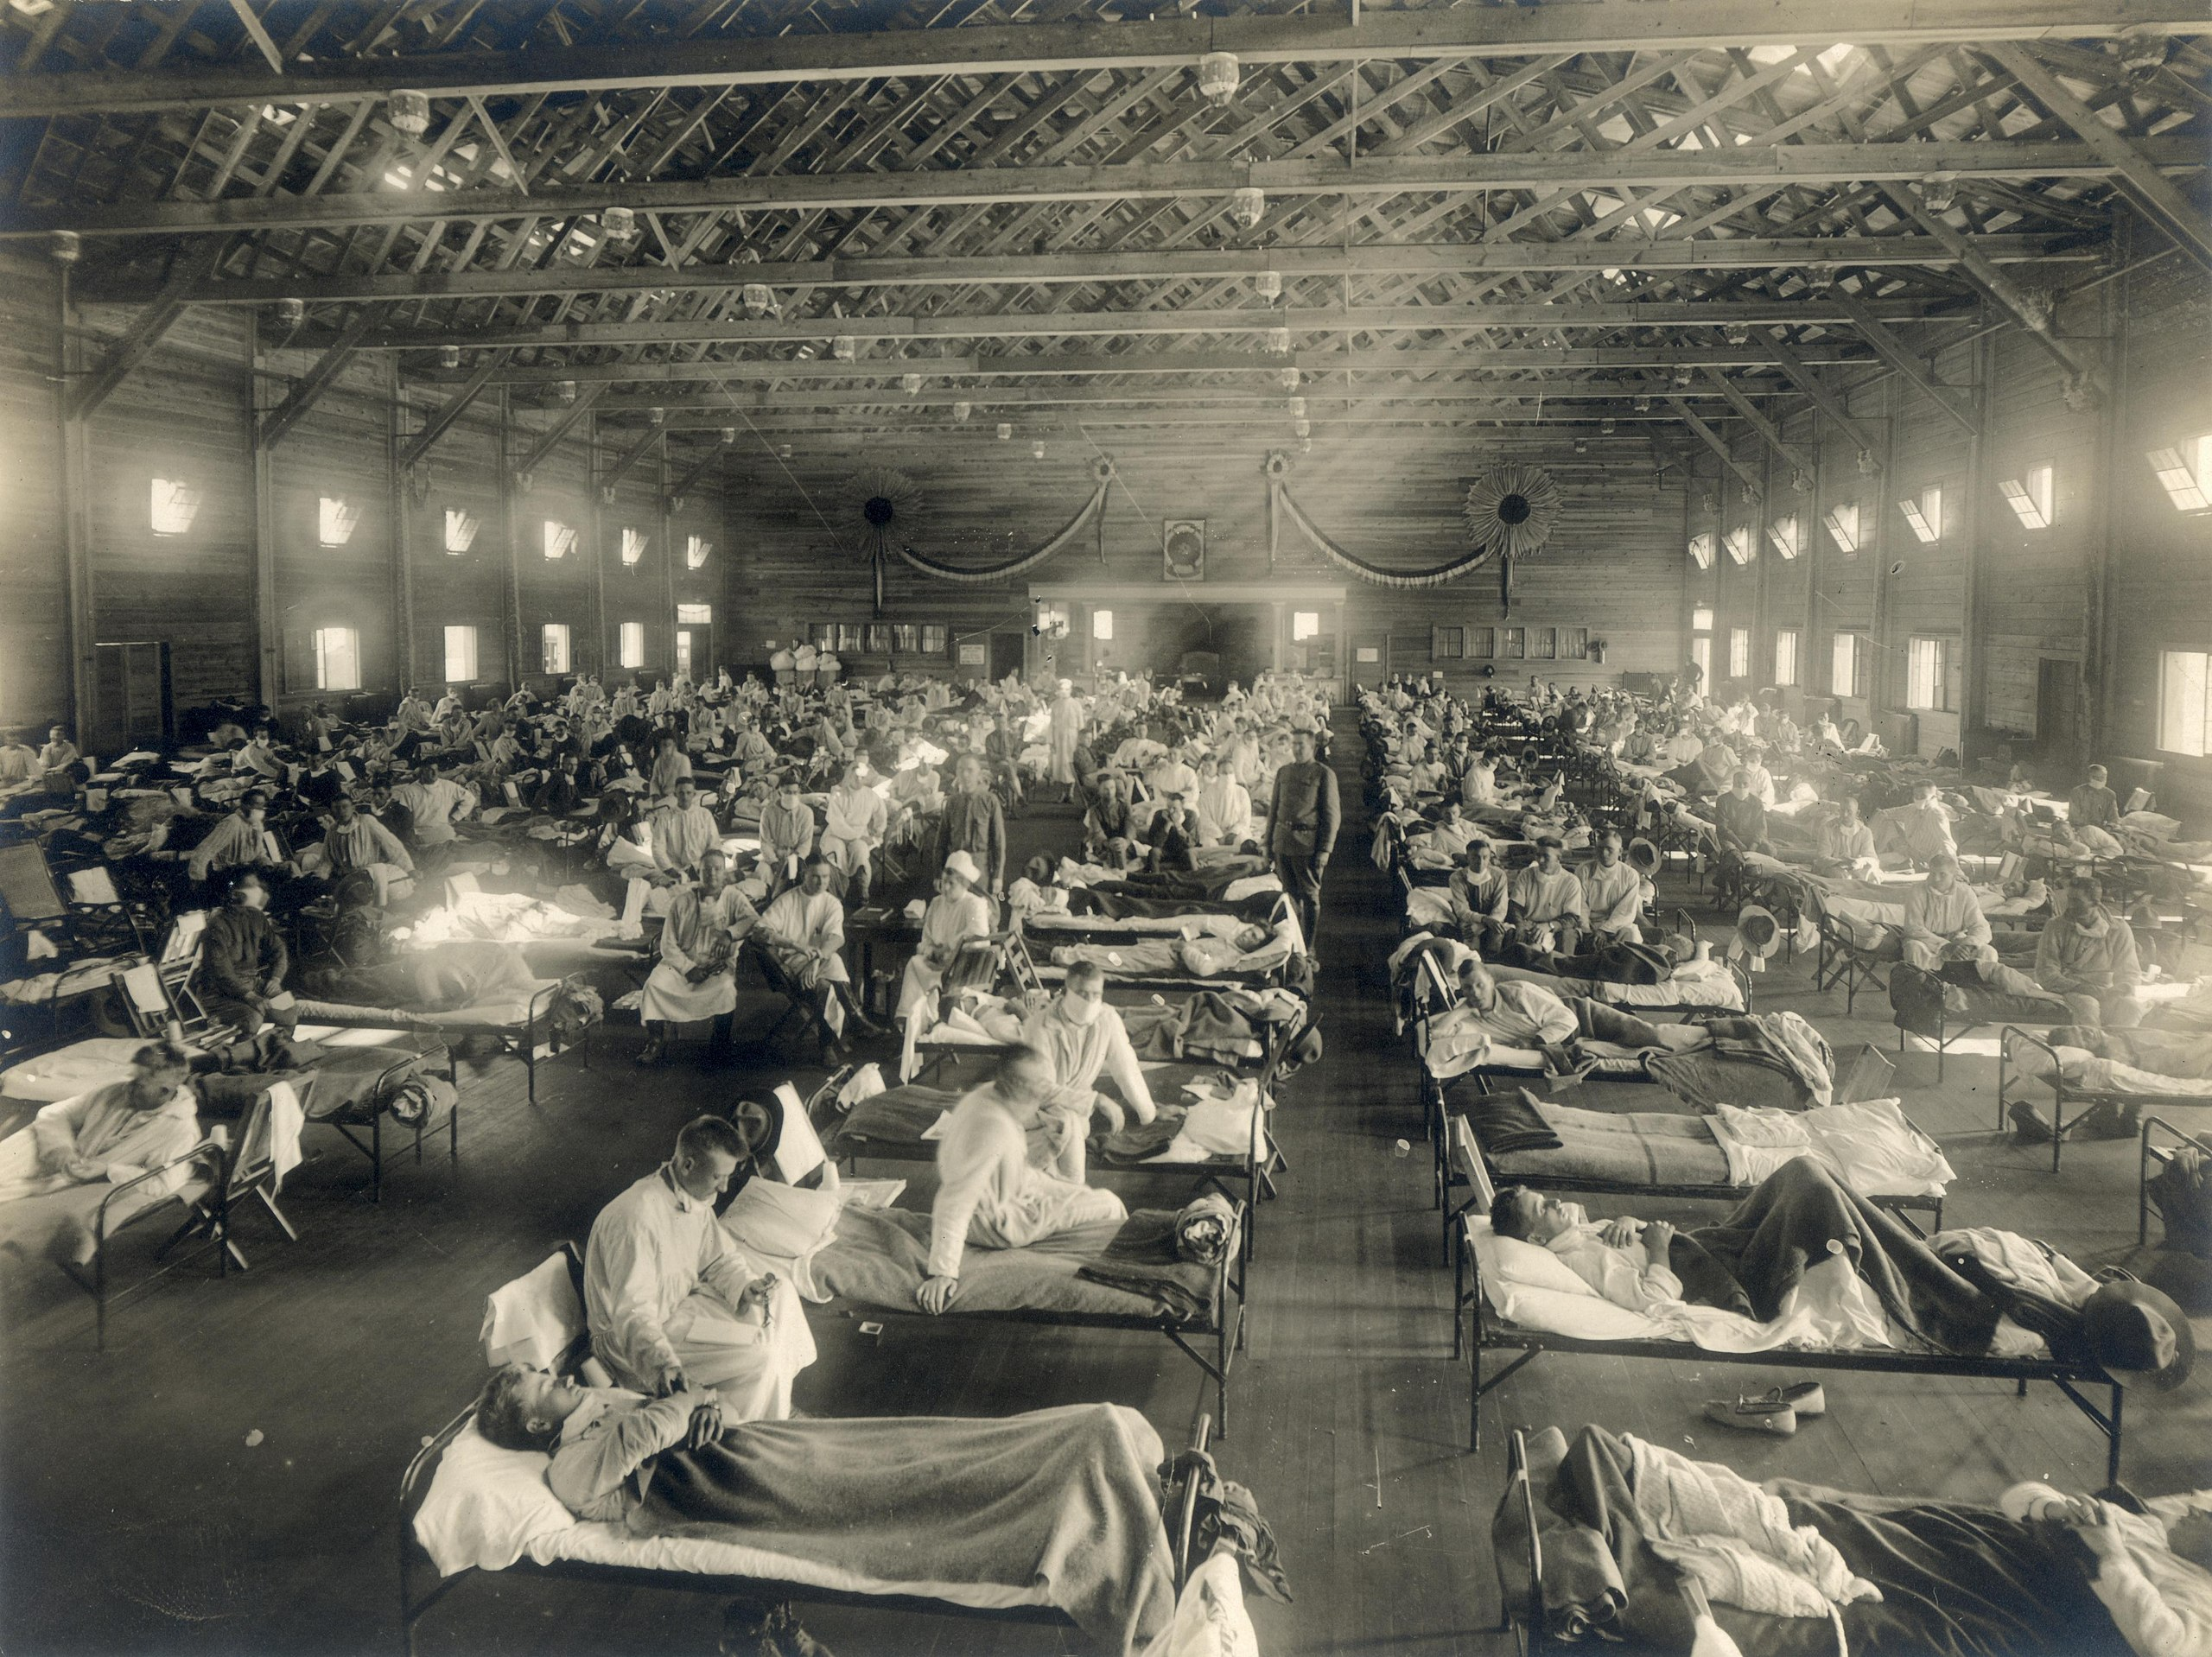 A photograph taken around 1918 of soldiers lying in beds during the Spanish Flu